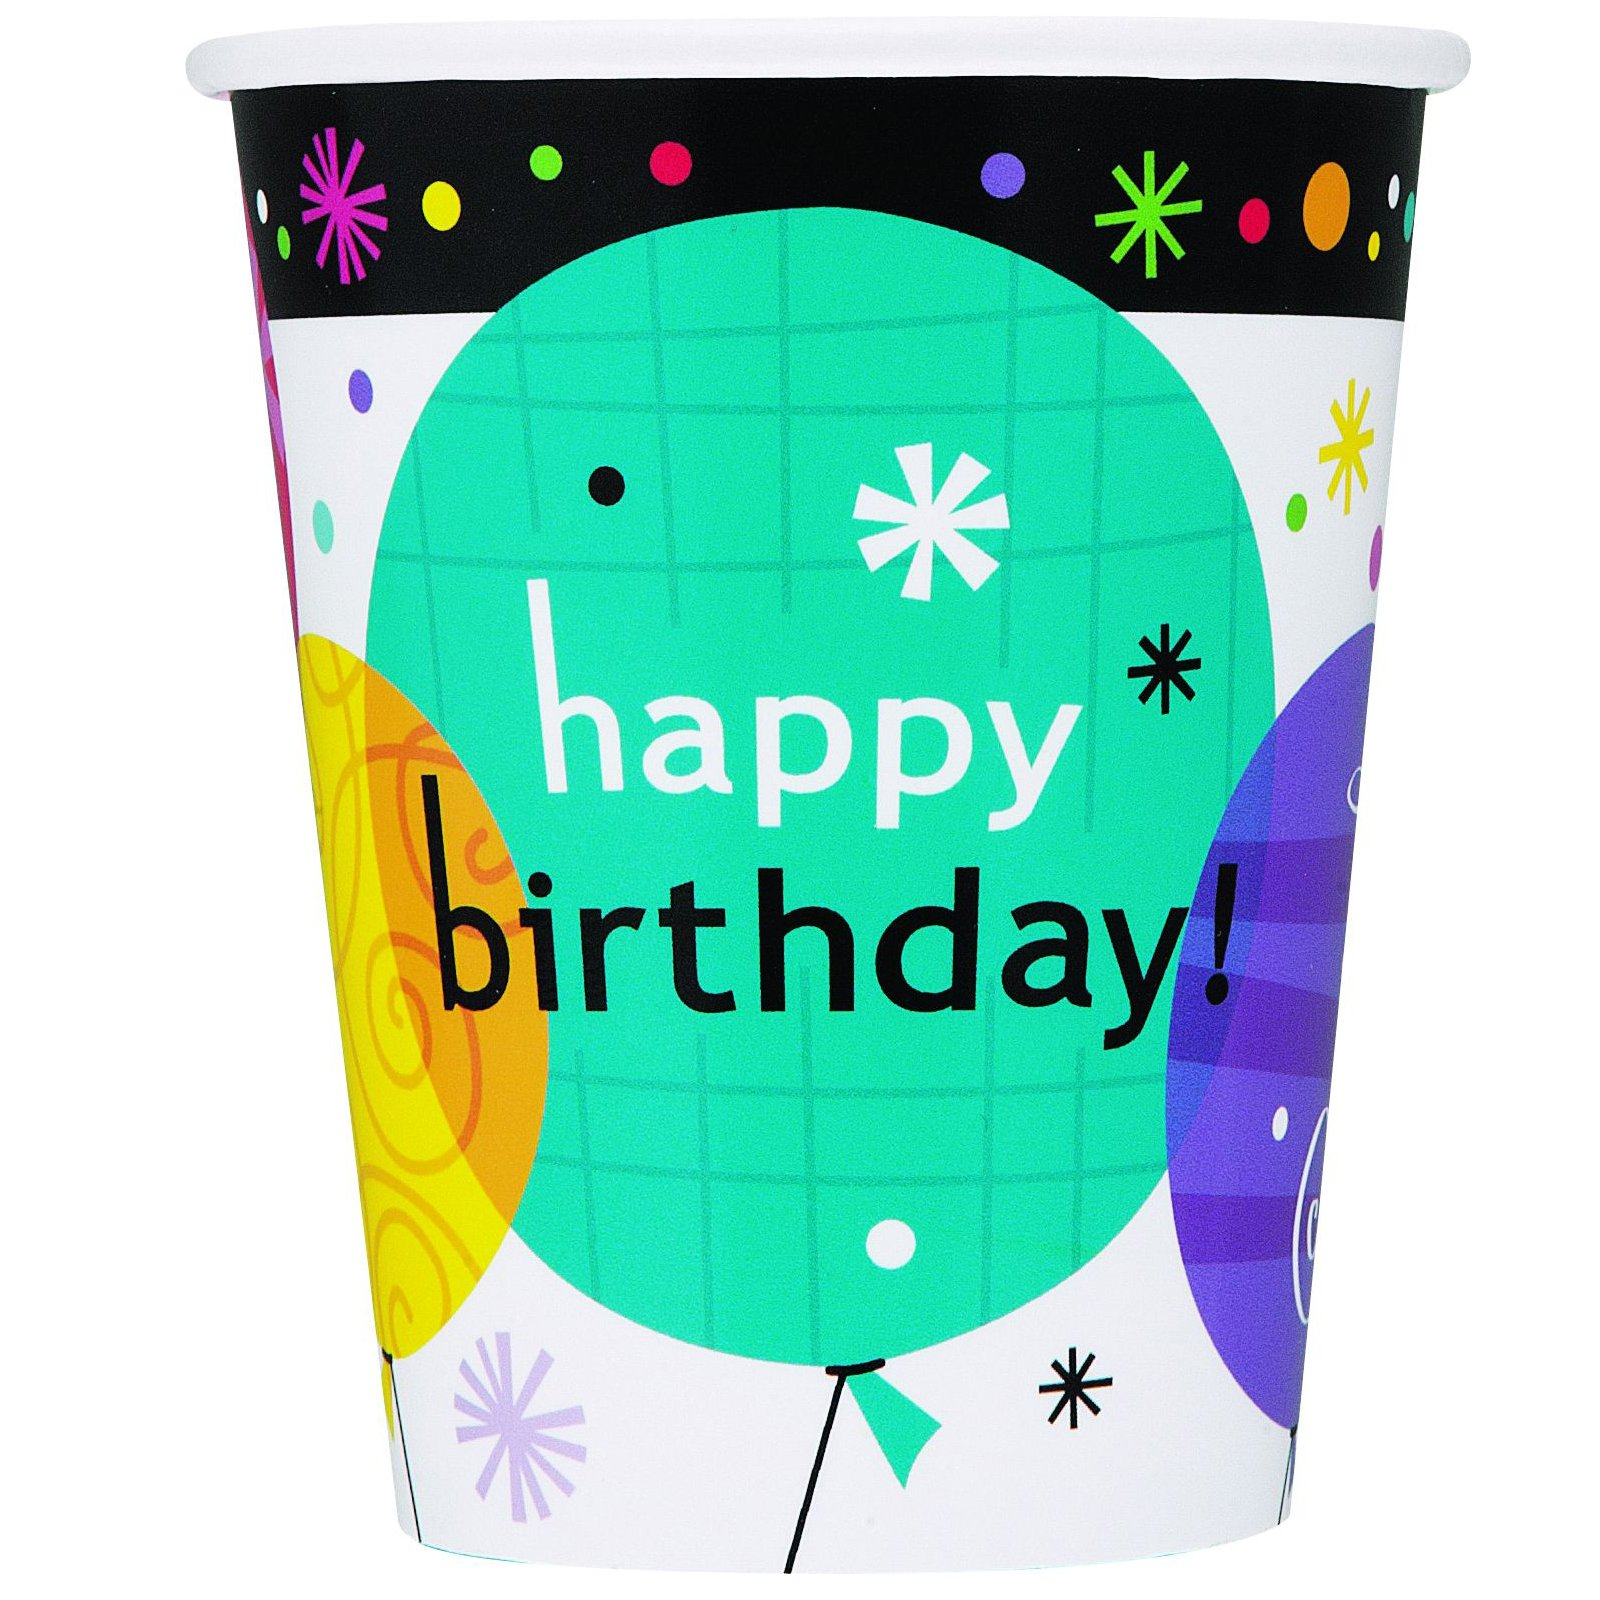 Breezy Birthday 9 oz. Paper Cups (8 count)